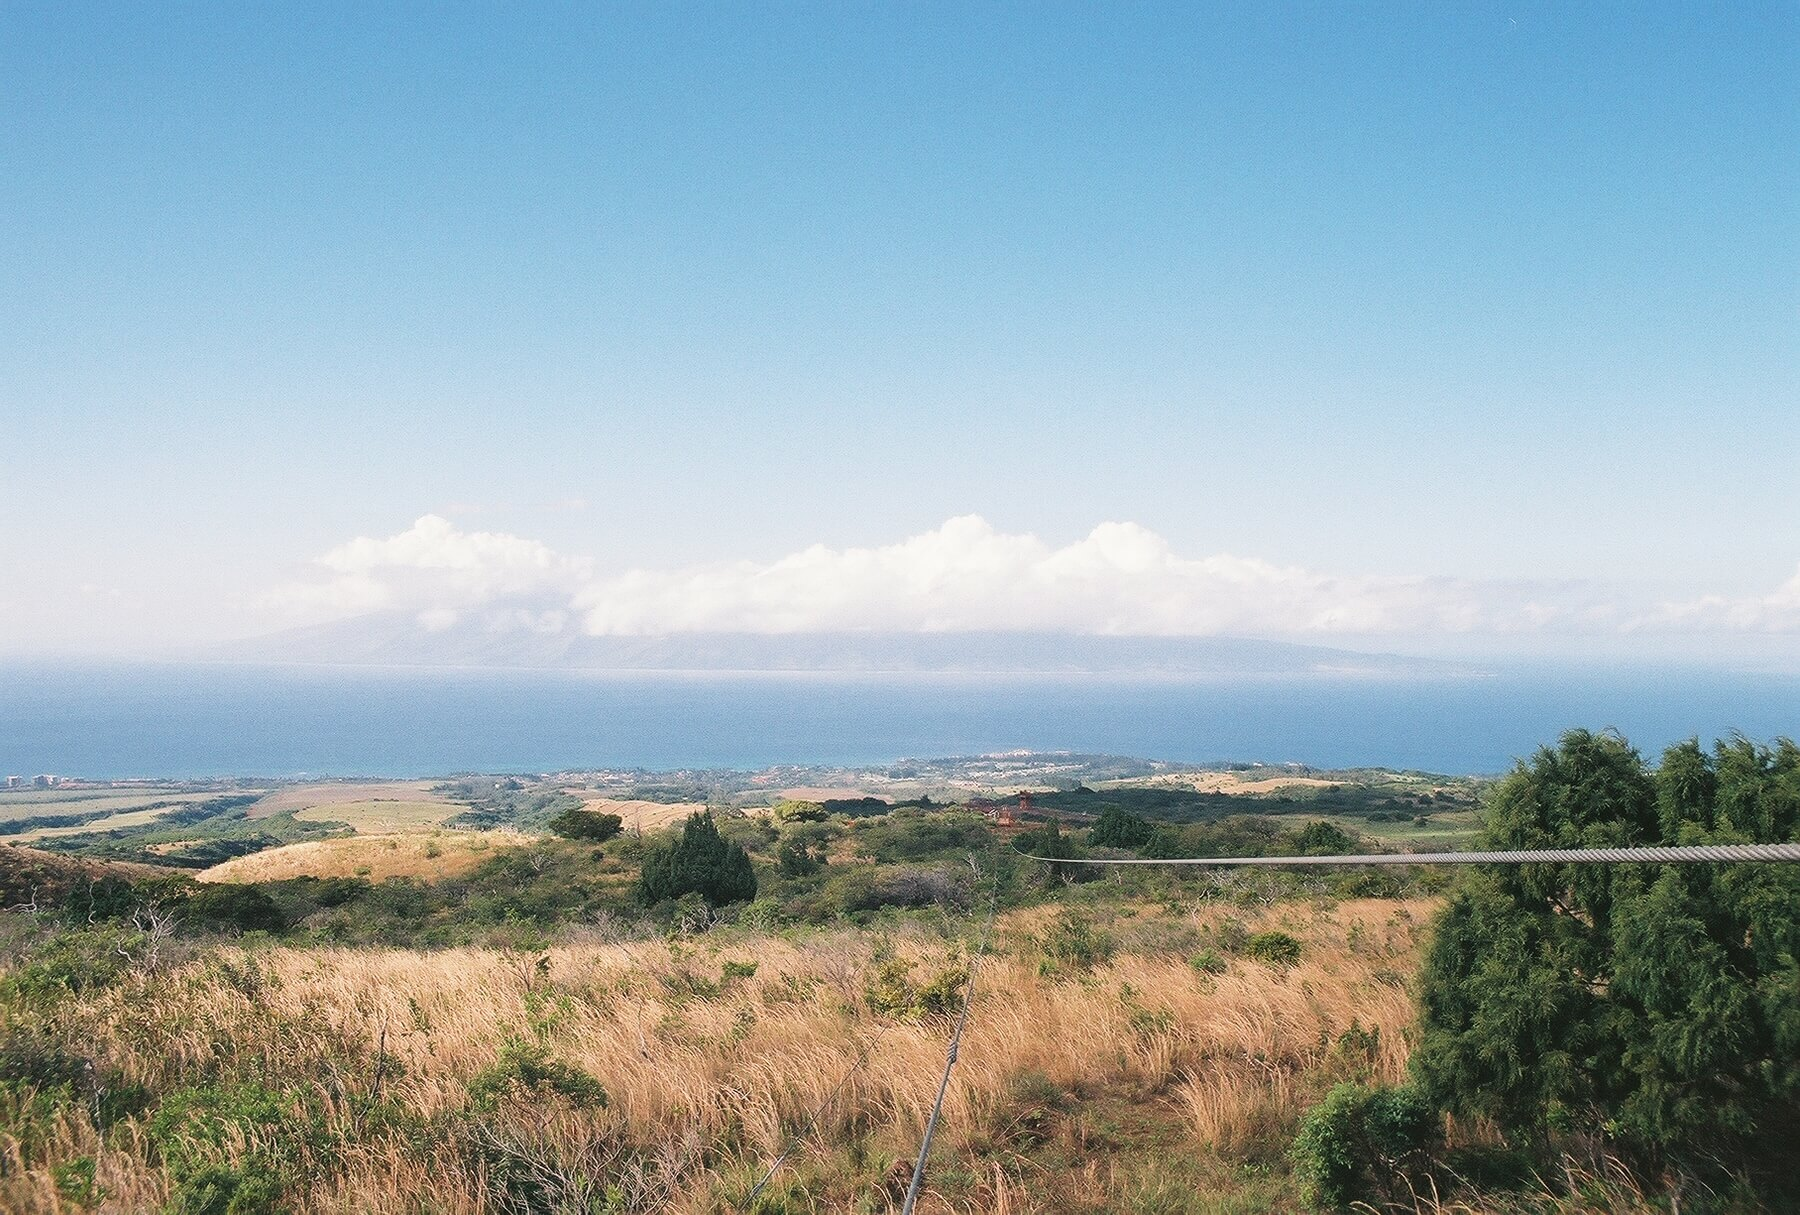 Kapalua Zip Line Tours | Discover the 10 best things to do in Maui with these insider tips from an ex-resident. #maui #travel #hawaii